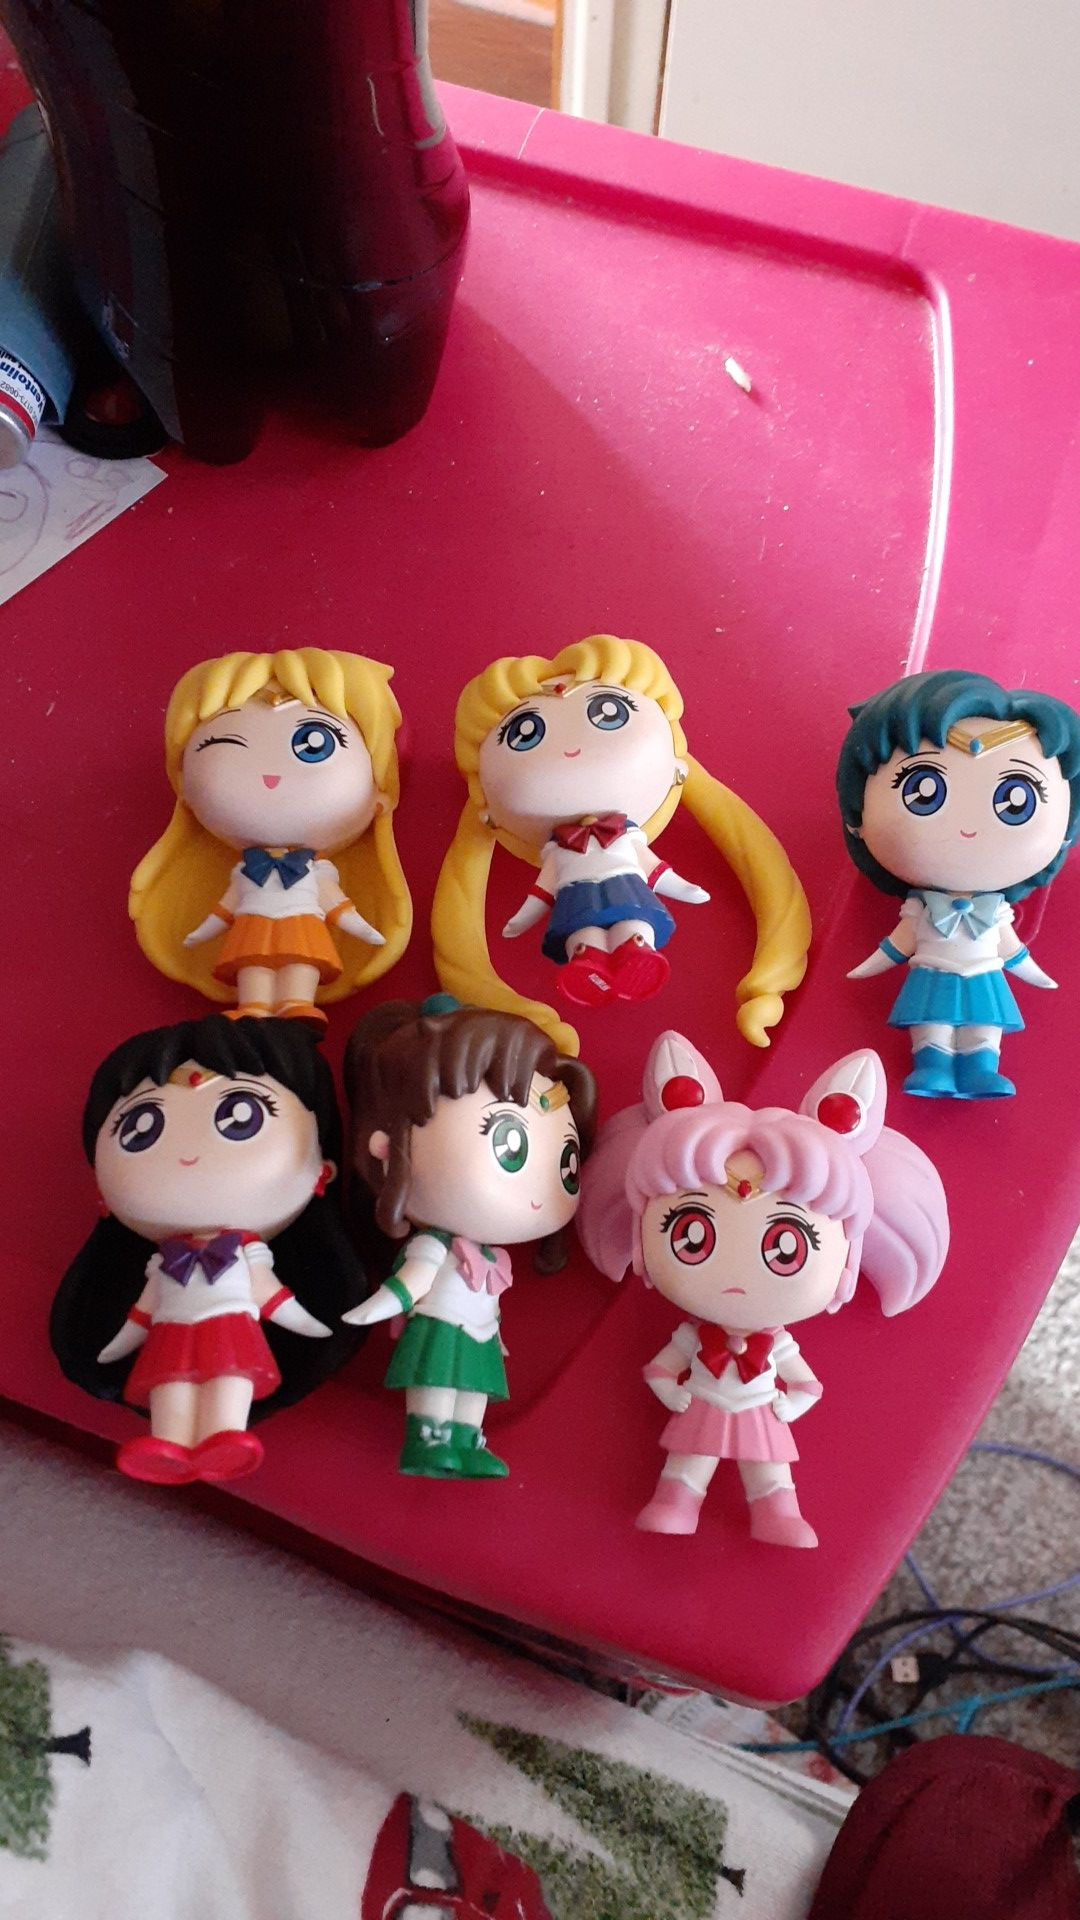 Sailor moon mystery minis by Funko